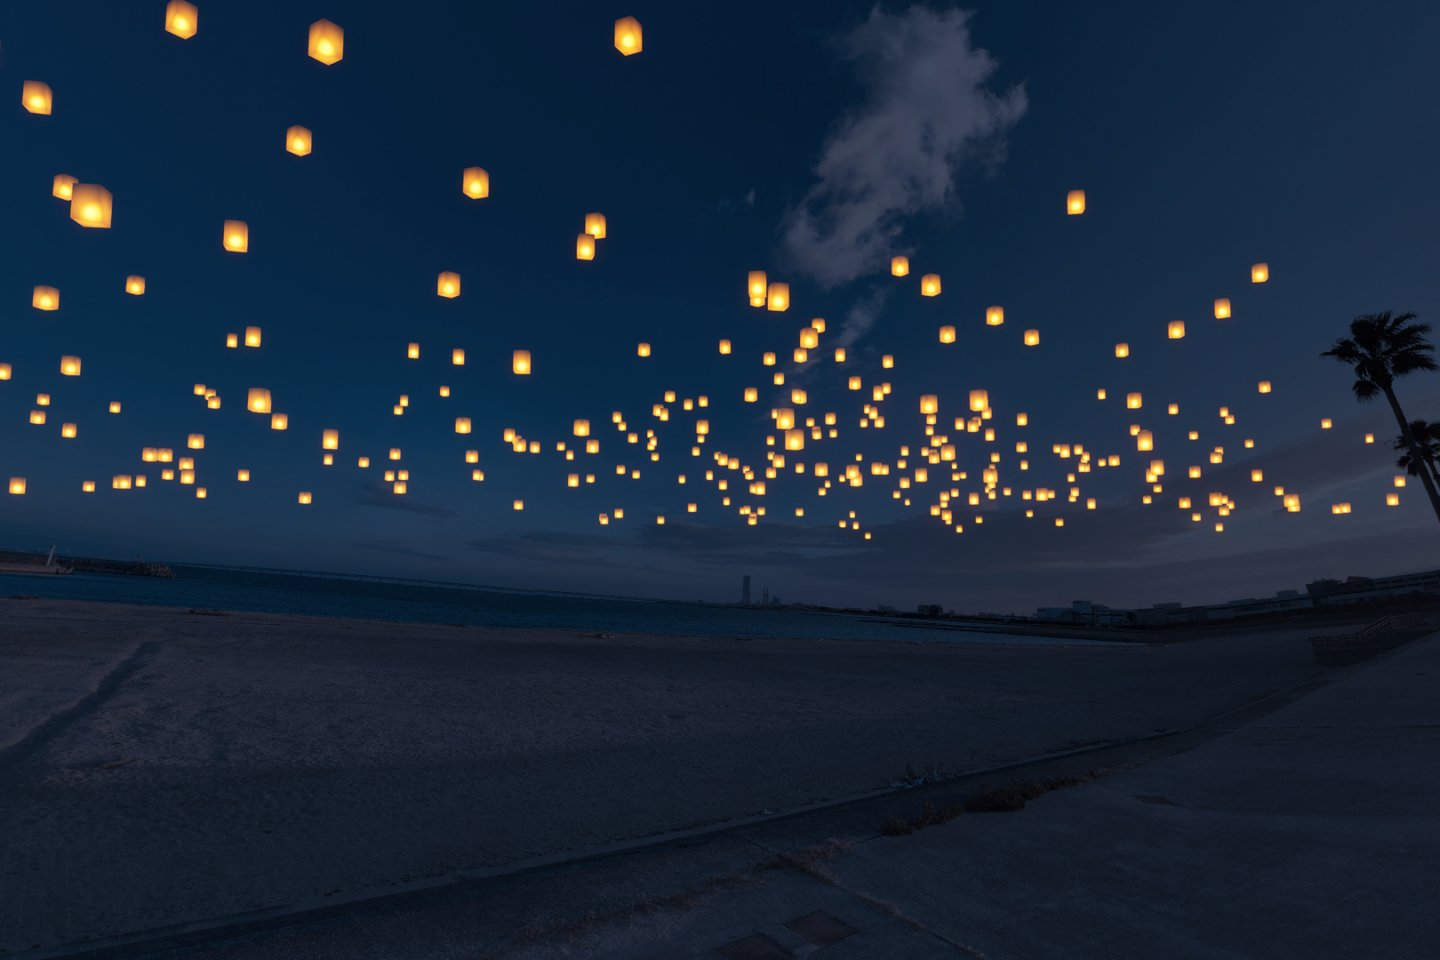 Around 1000 lanterns will decorate the beach and will be released all at once